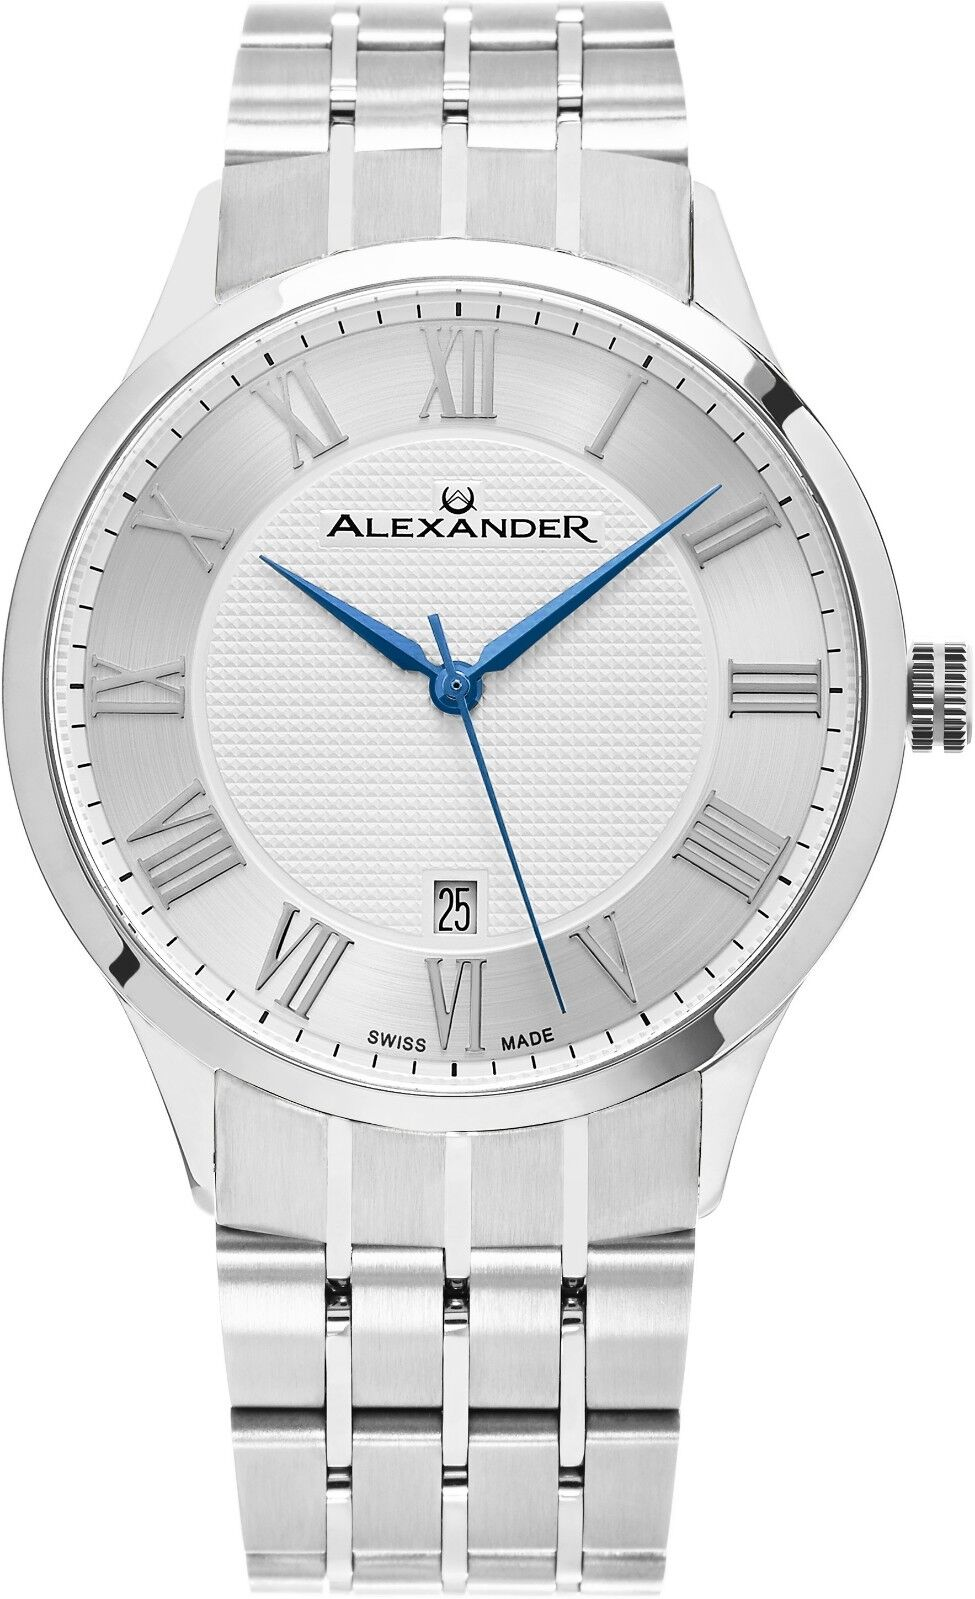 Alexander Silver Dial Stainless Steel Swiss Made Slim 9.5mm Men's Dress Watch